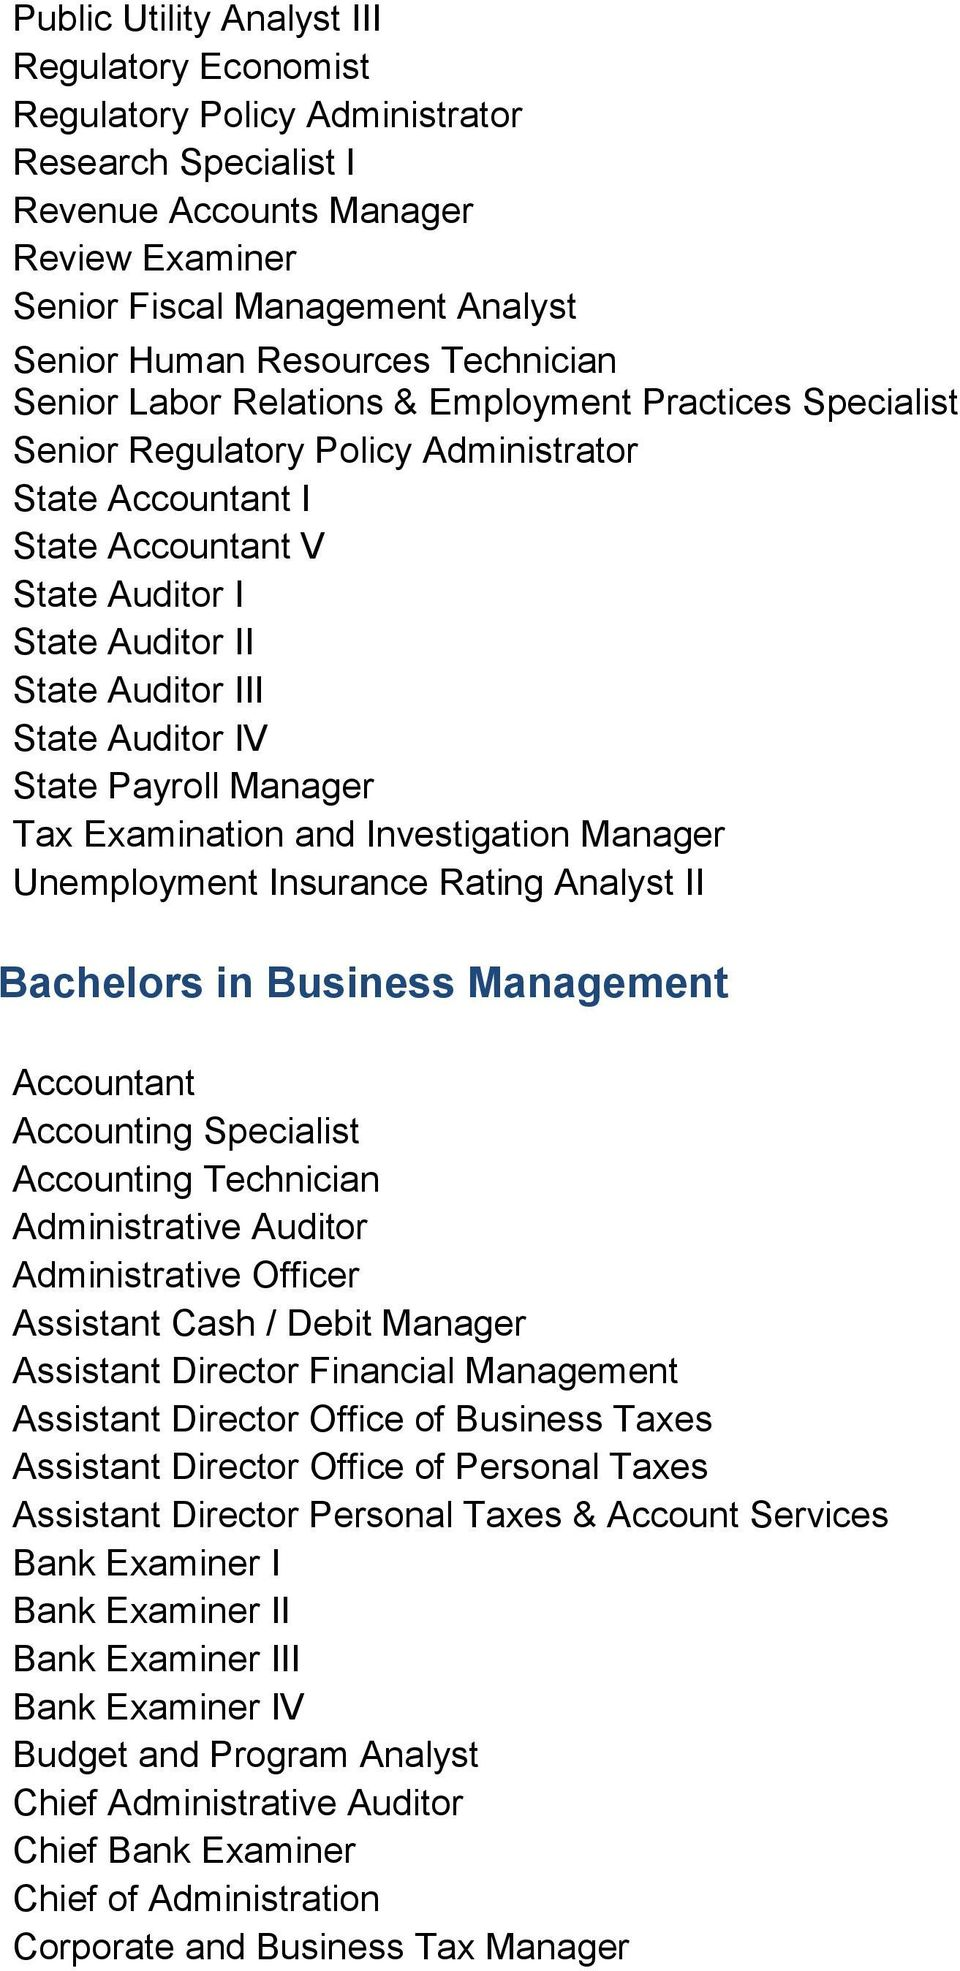 State Auditor IV State Payroll Manager Tax Examination and Investigation Manager Unemployment Insurance Rating Analyst II Bachelors in Business Management Accountant Accounting Specialist Accounting